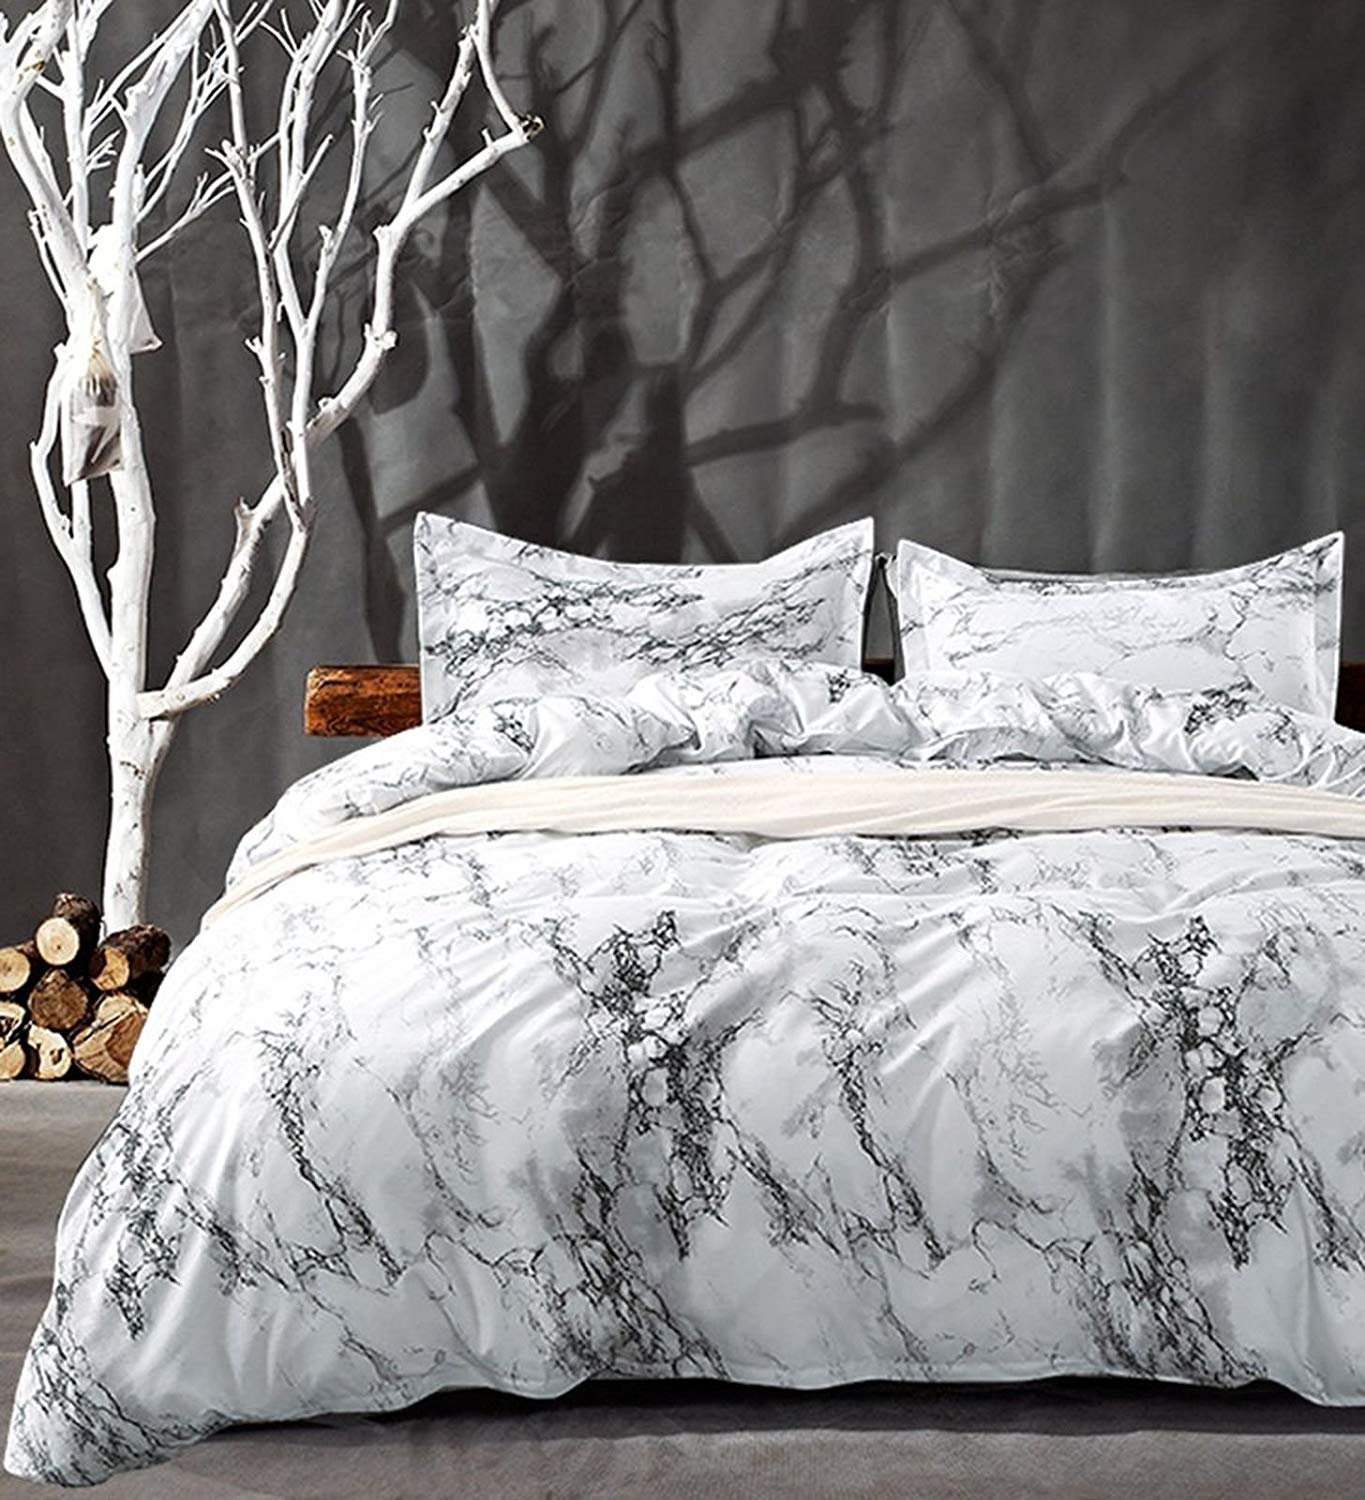 Brief Marble Lines Bedding Set Single Full Queen King 4 Size Duvet Cover With Pillowcase Set (Size : King(3Pcs/Set))